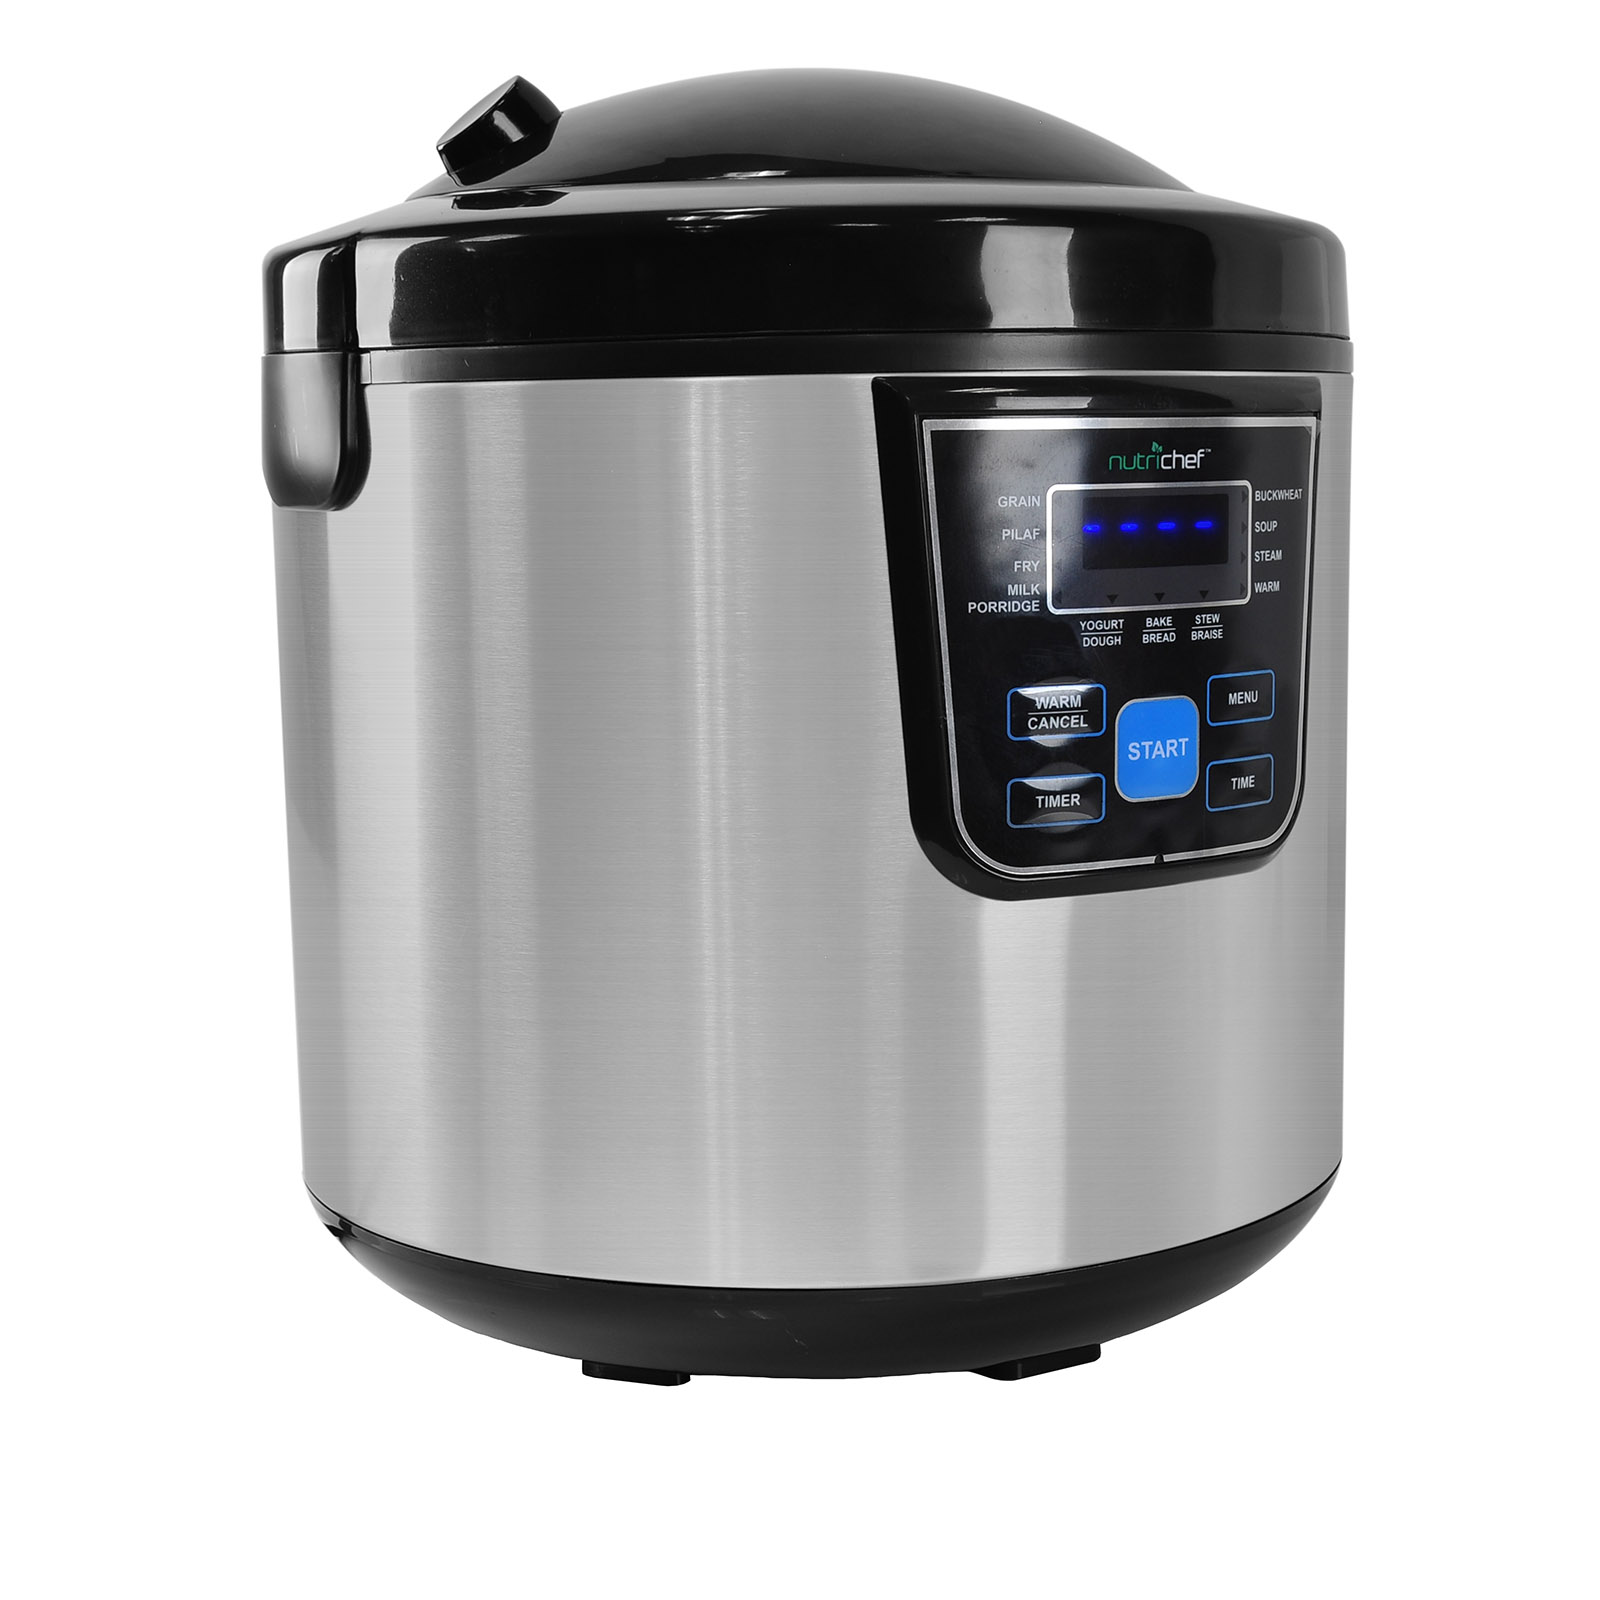 NutriChef Multi-Cooker / Rice Cooker, Multifunction Slow Cooker and Steamer